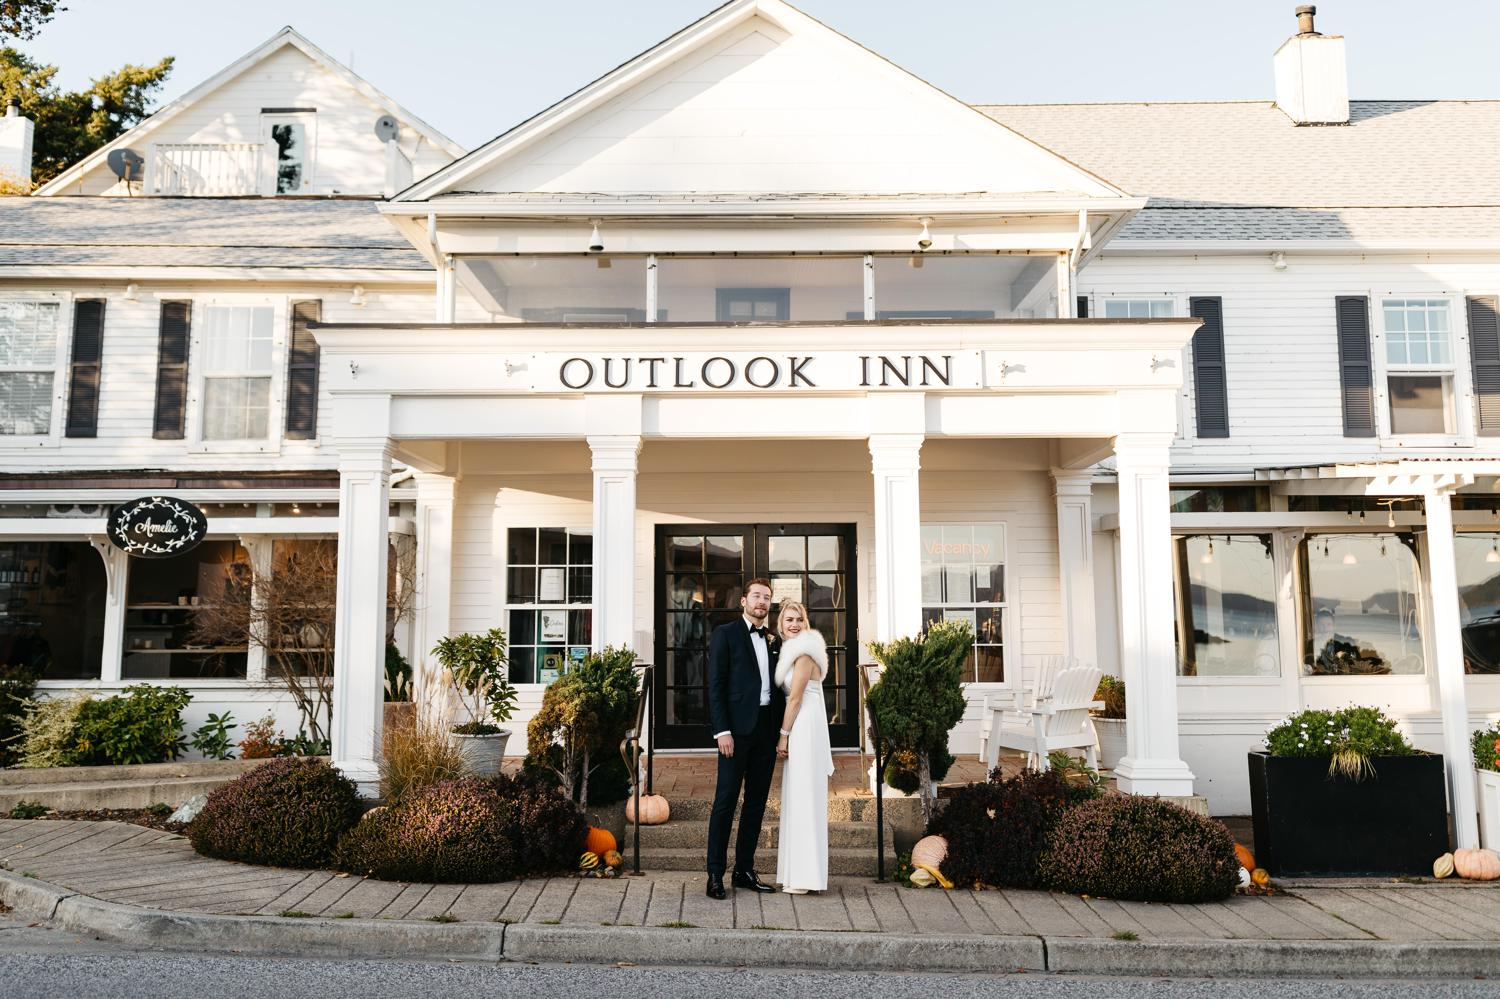 wedding at outlook inn